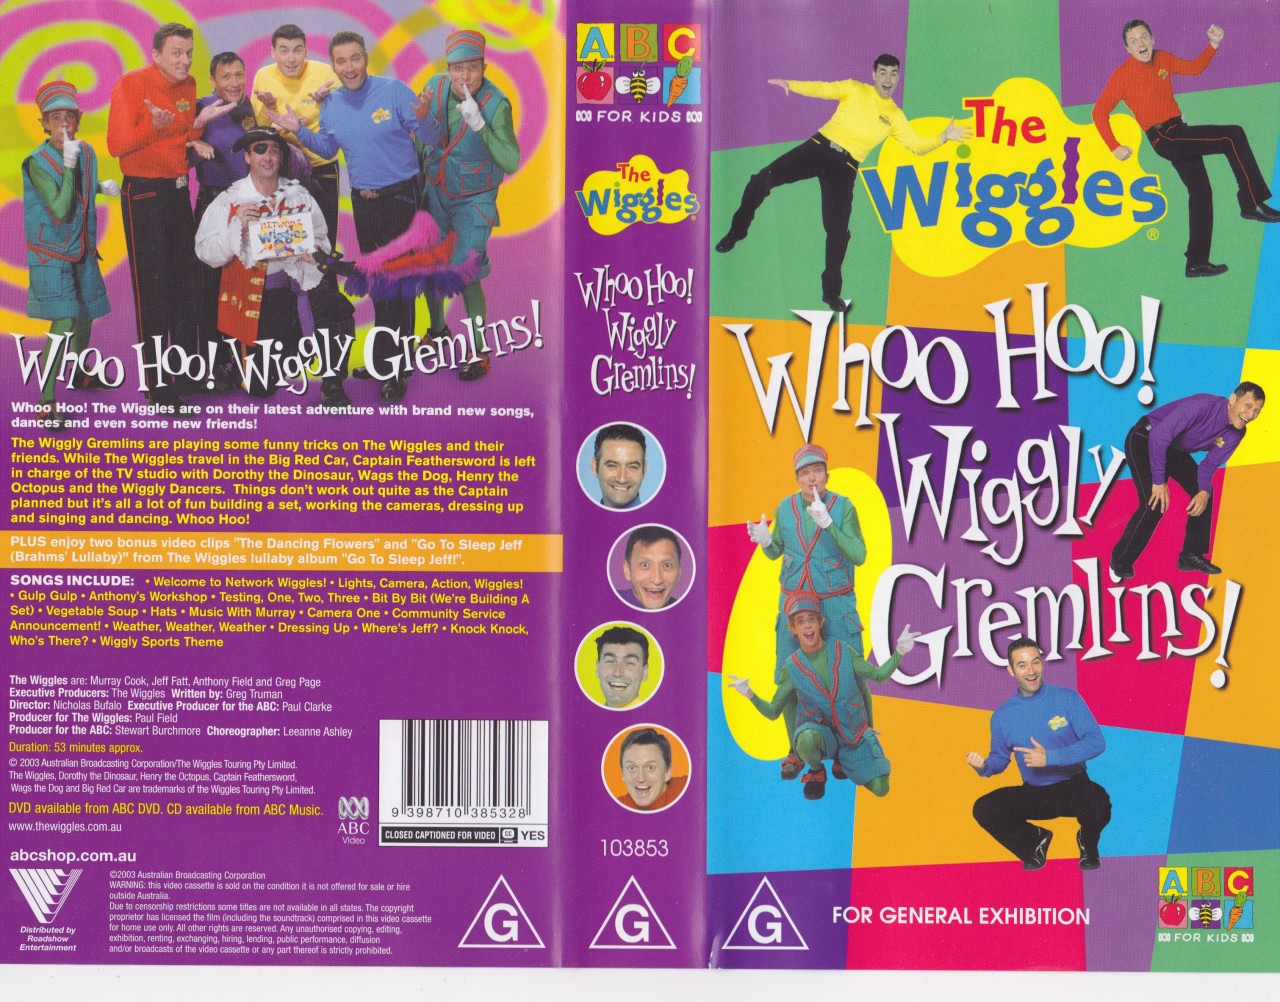 Opening to the wiggles whoo hoo wiggly gremlins 2003 australian opening to the wiggles whoo hoo wiggly gremlins 2003 australian vhs 20th century fox version scratchpad fandom powered by wikia sciox Choice Image